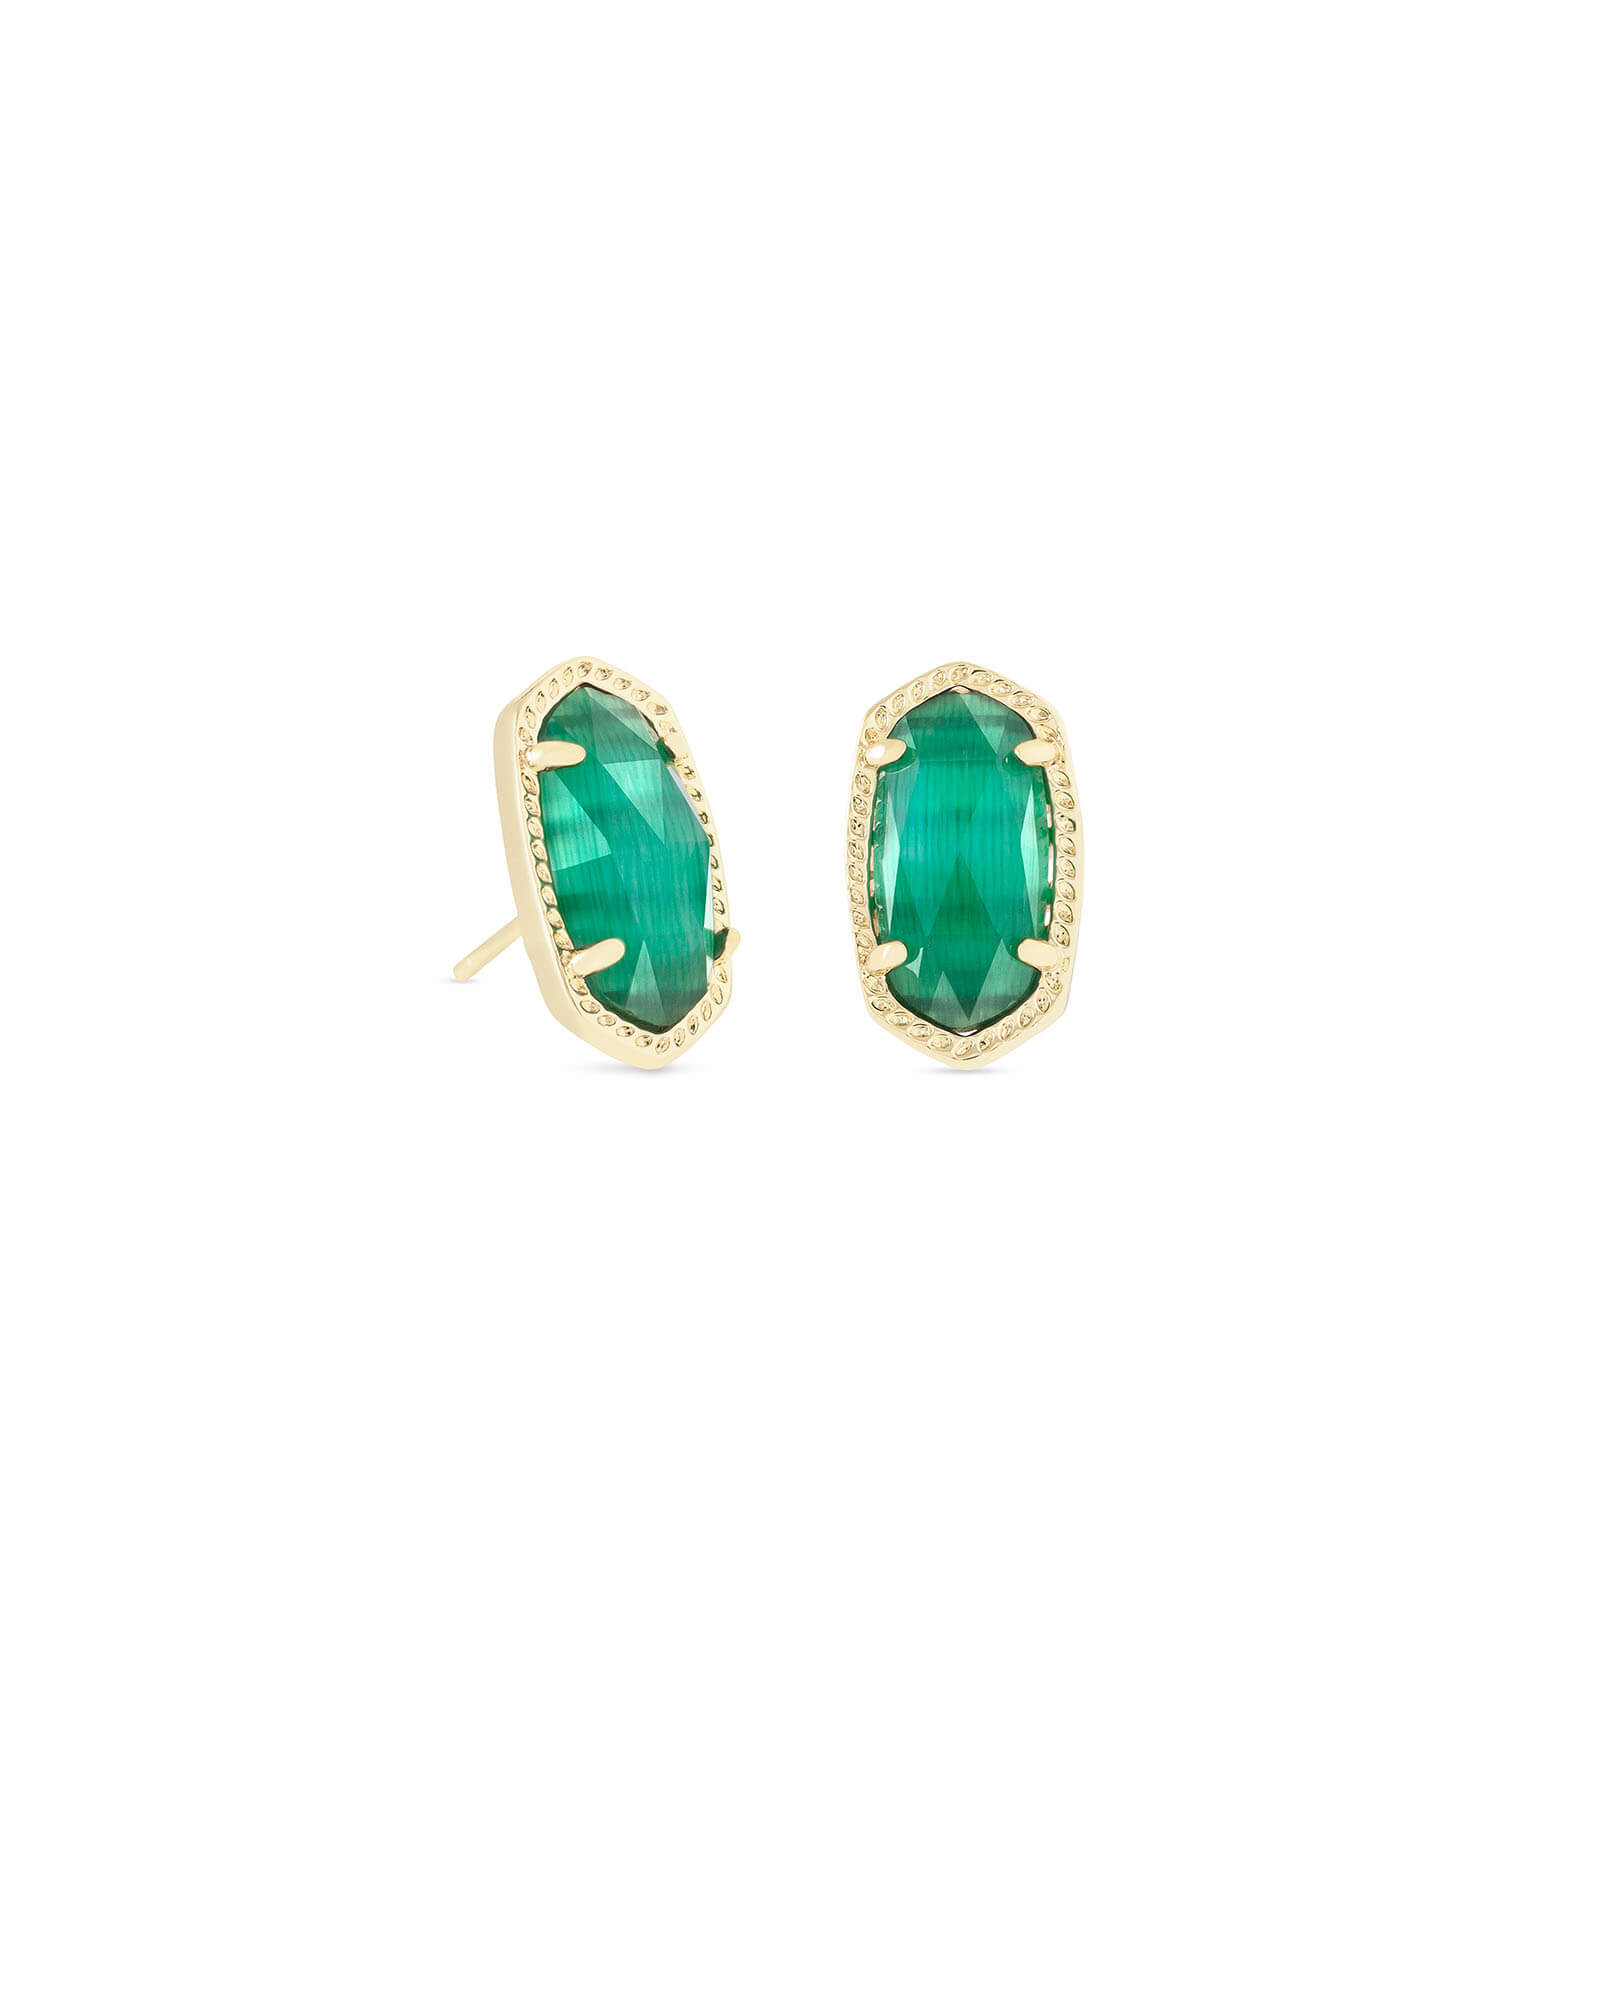 Ellie Gold Stud Earrings in Emerald Cats Eye